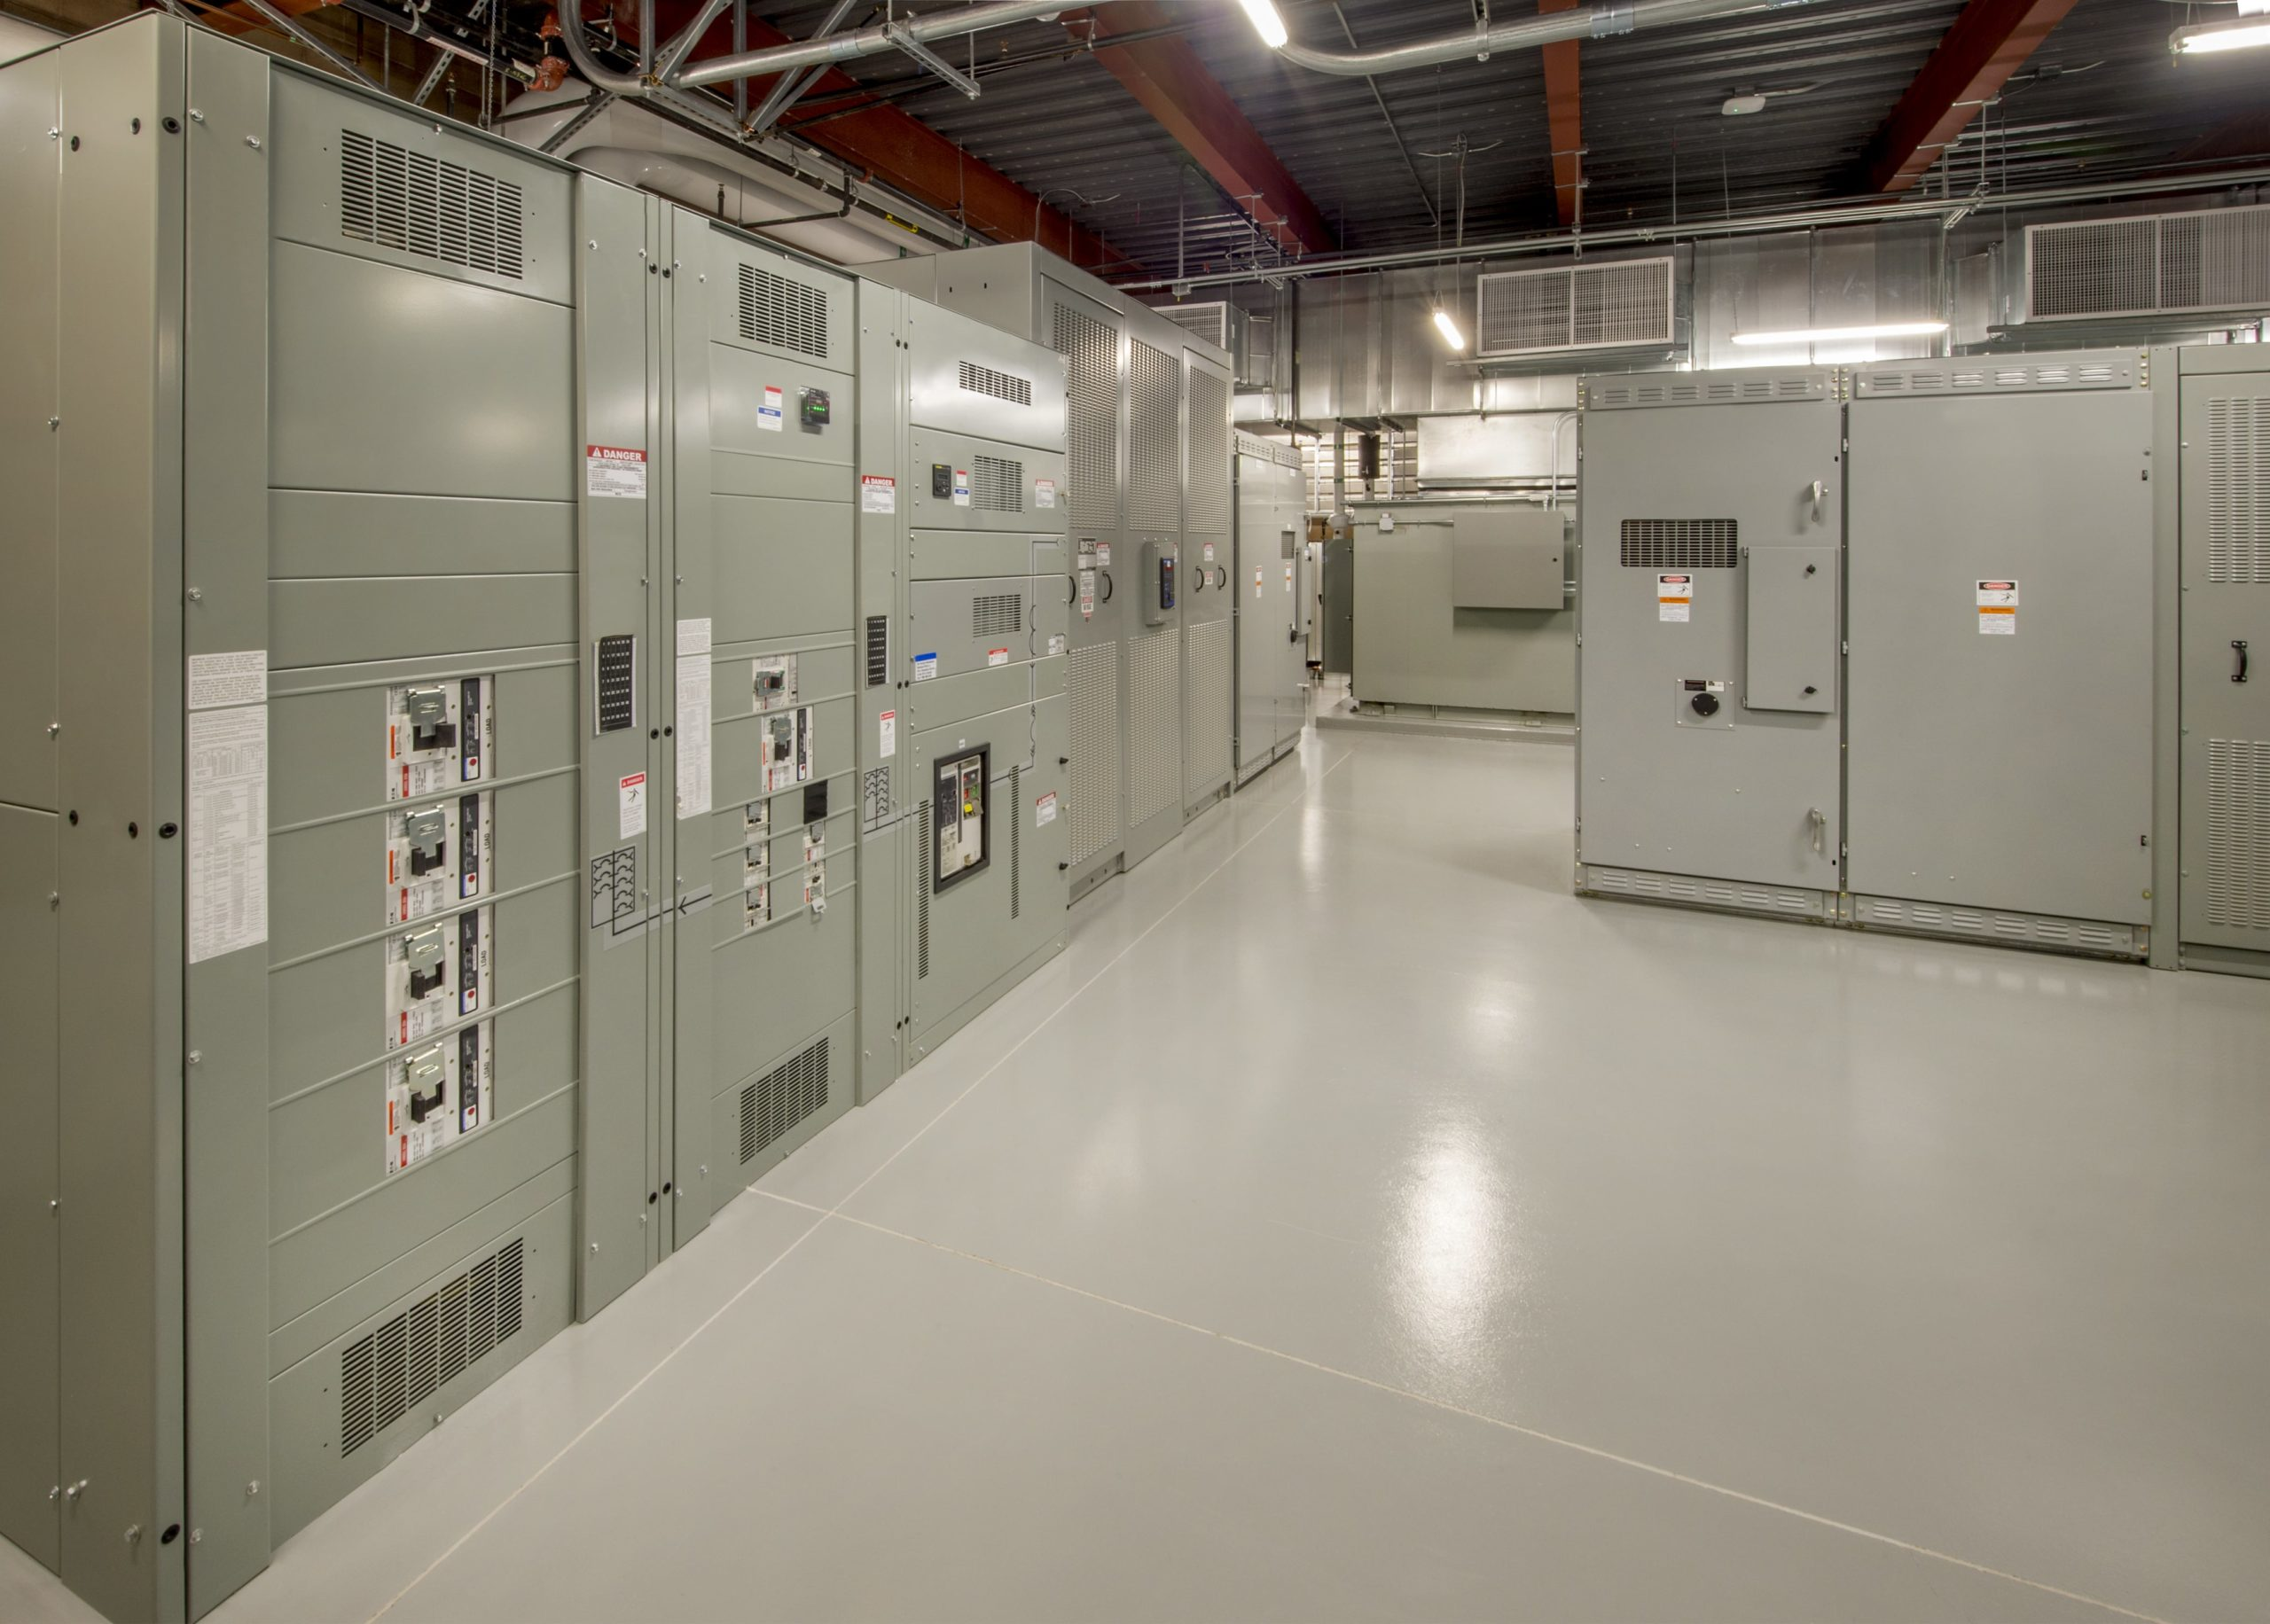 Electrical room with clean floor